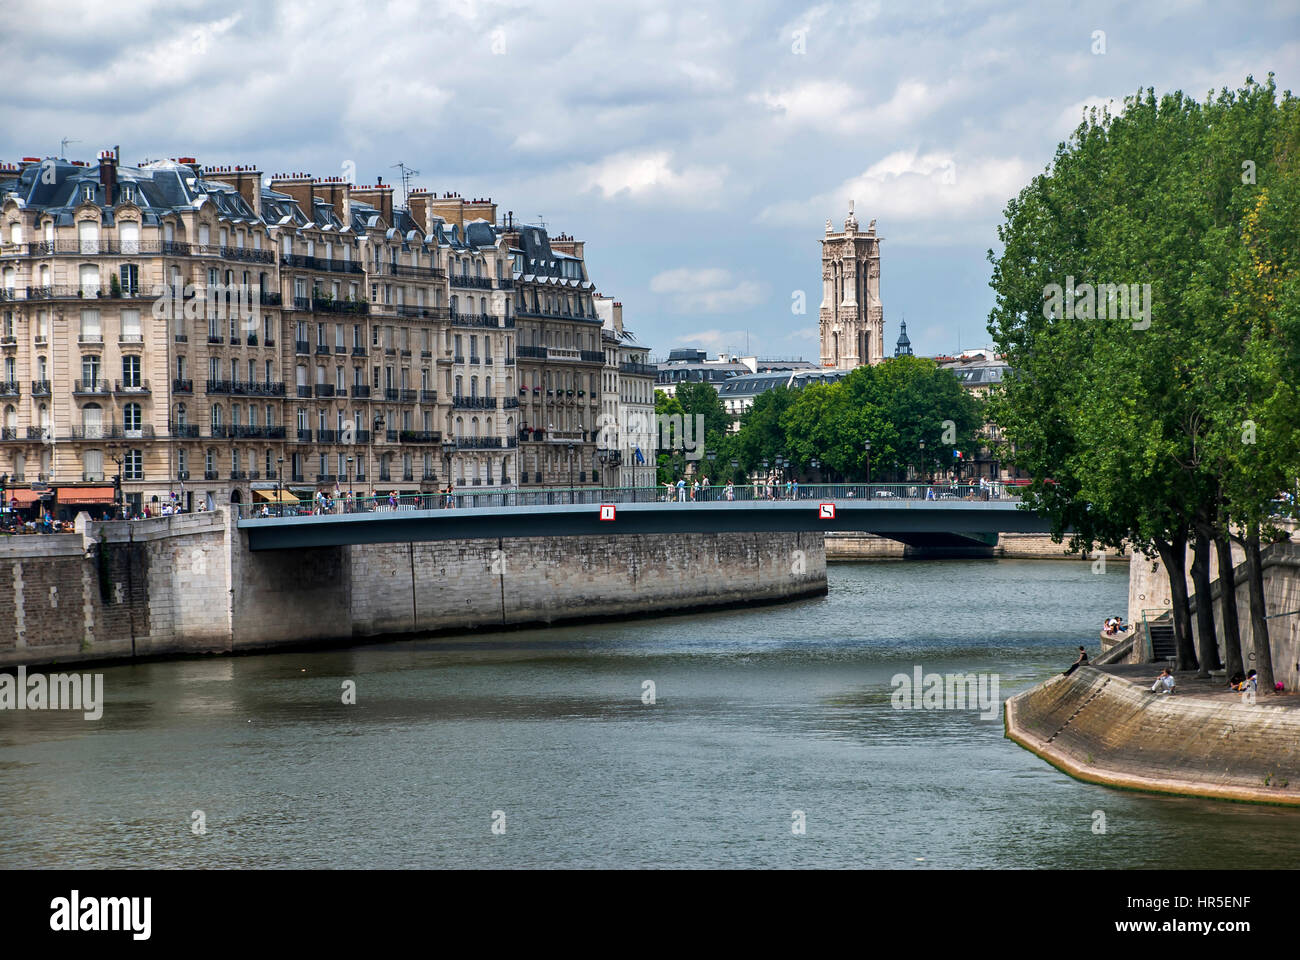 Pont Saint-Louis photographed in Paris, France - Stock Image